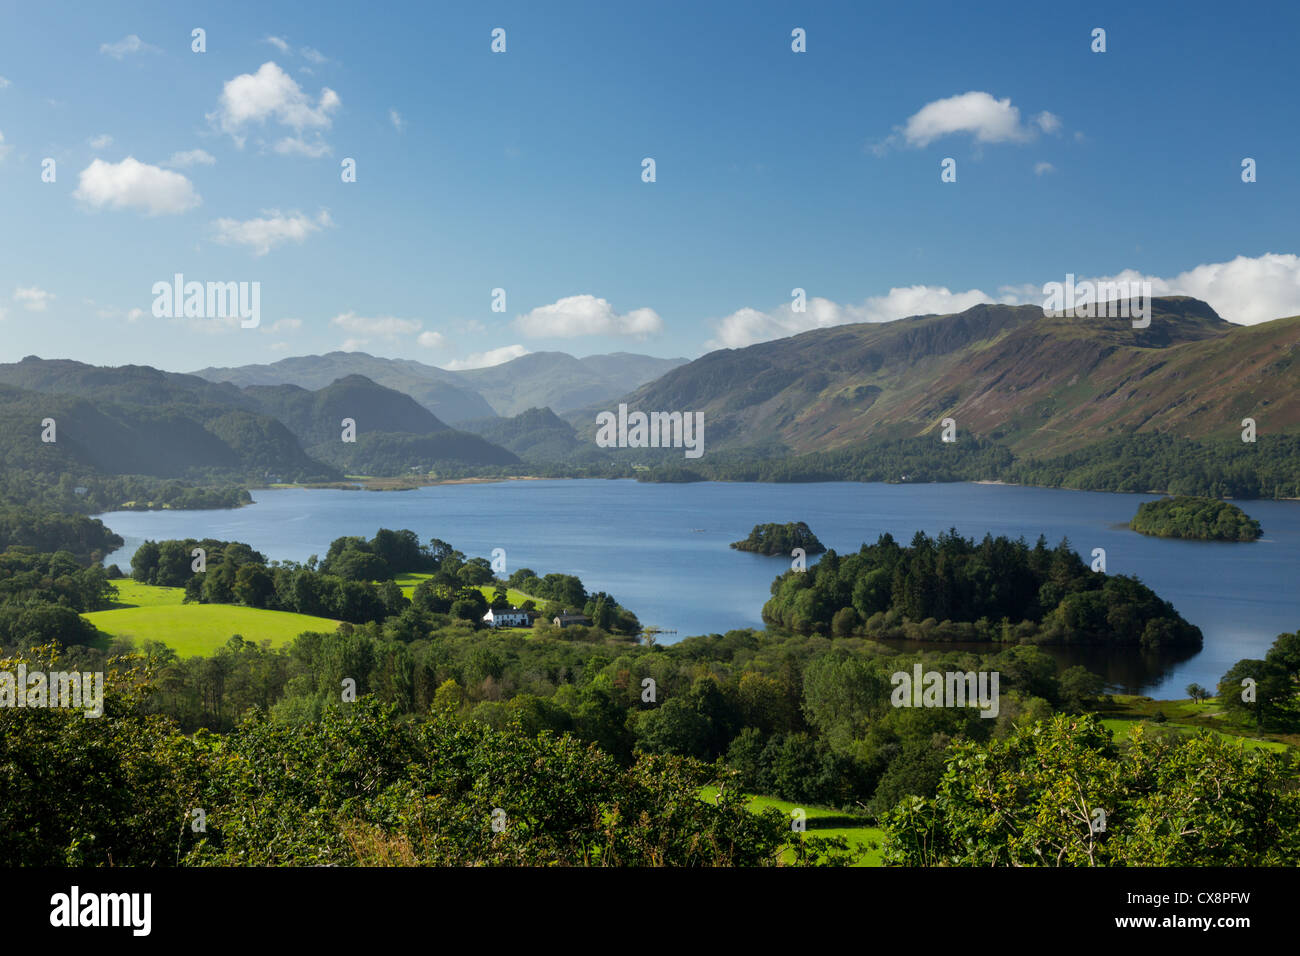 Panorama of Derwentwater in English Lake District from Castlehead viewpoint in early morning - Stock Image